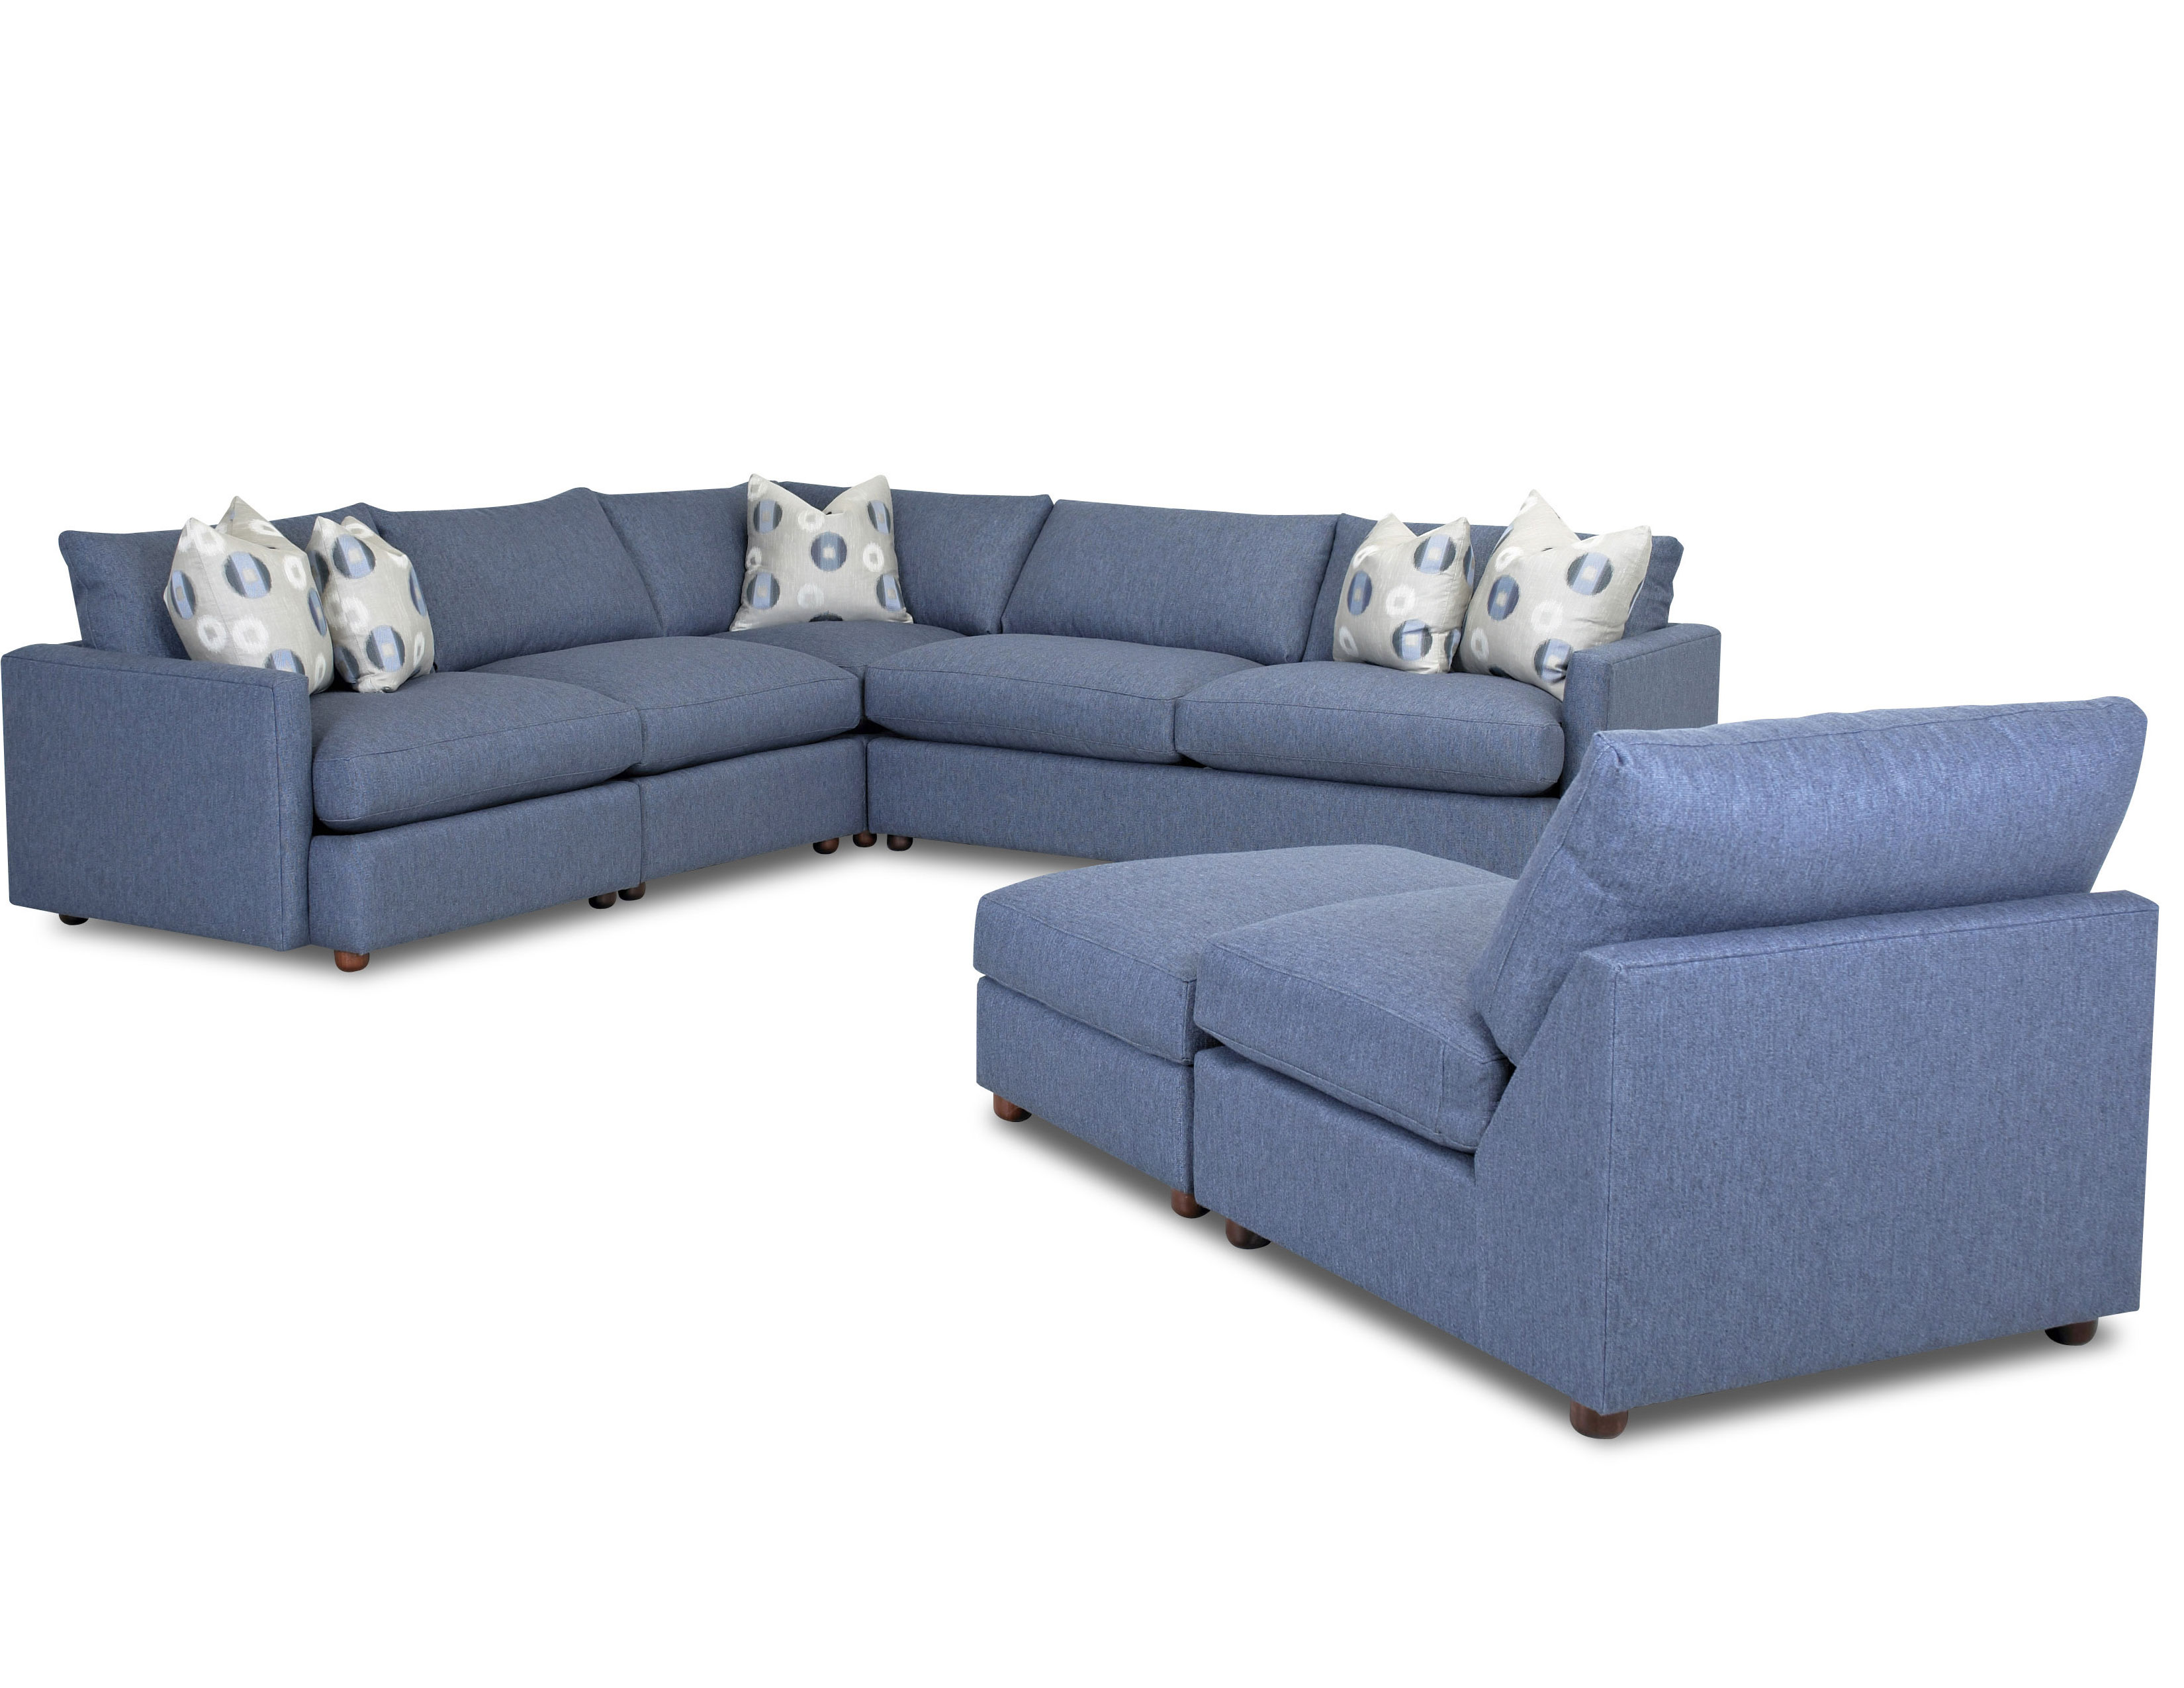 Leisure D4033 Modular Sectional With